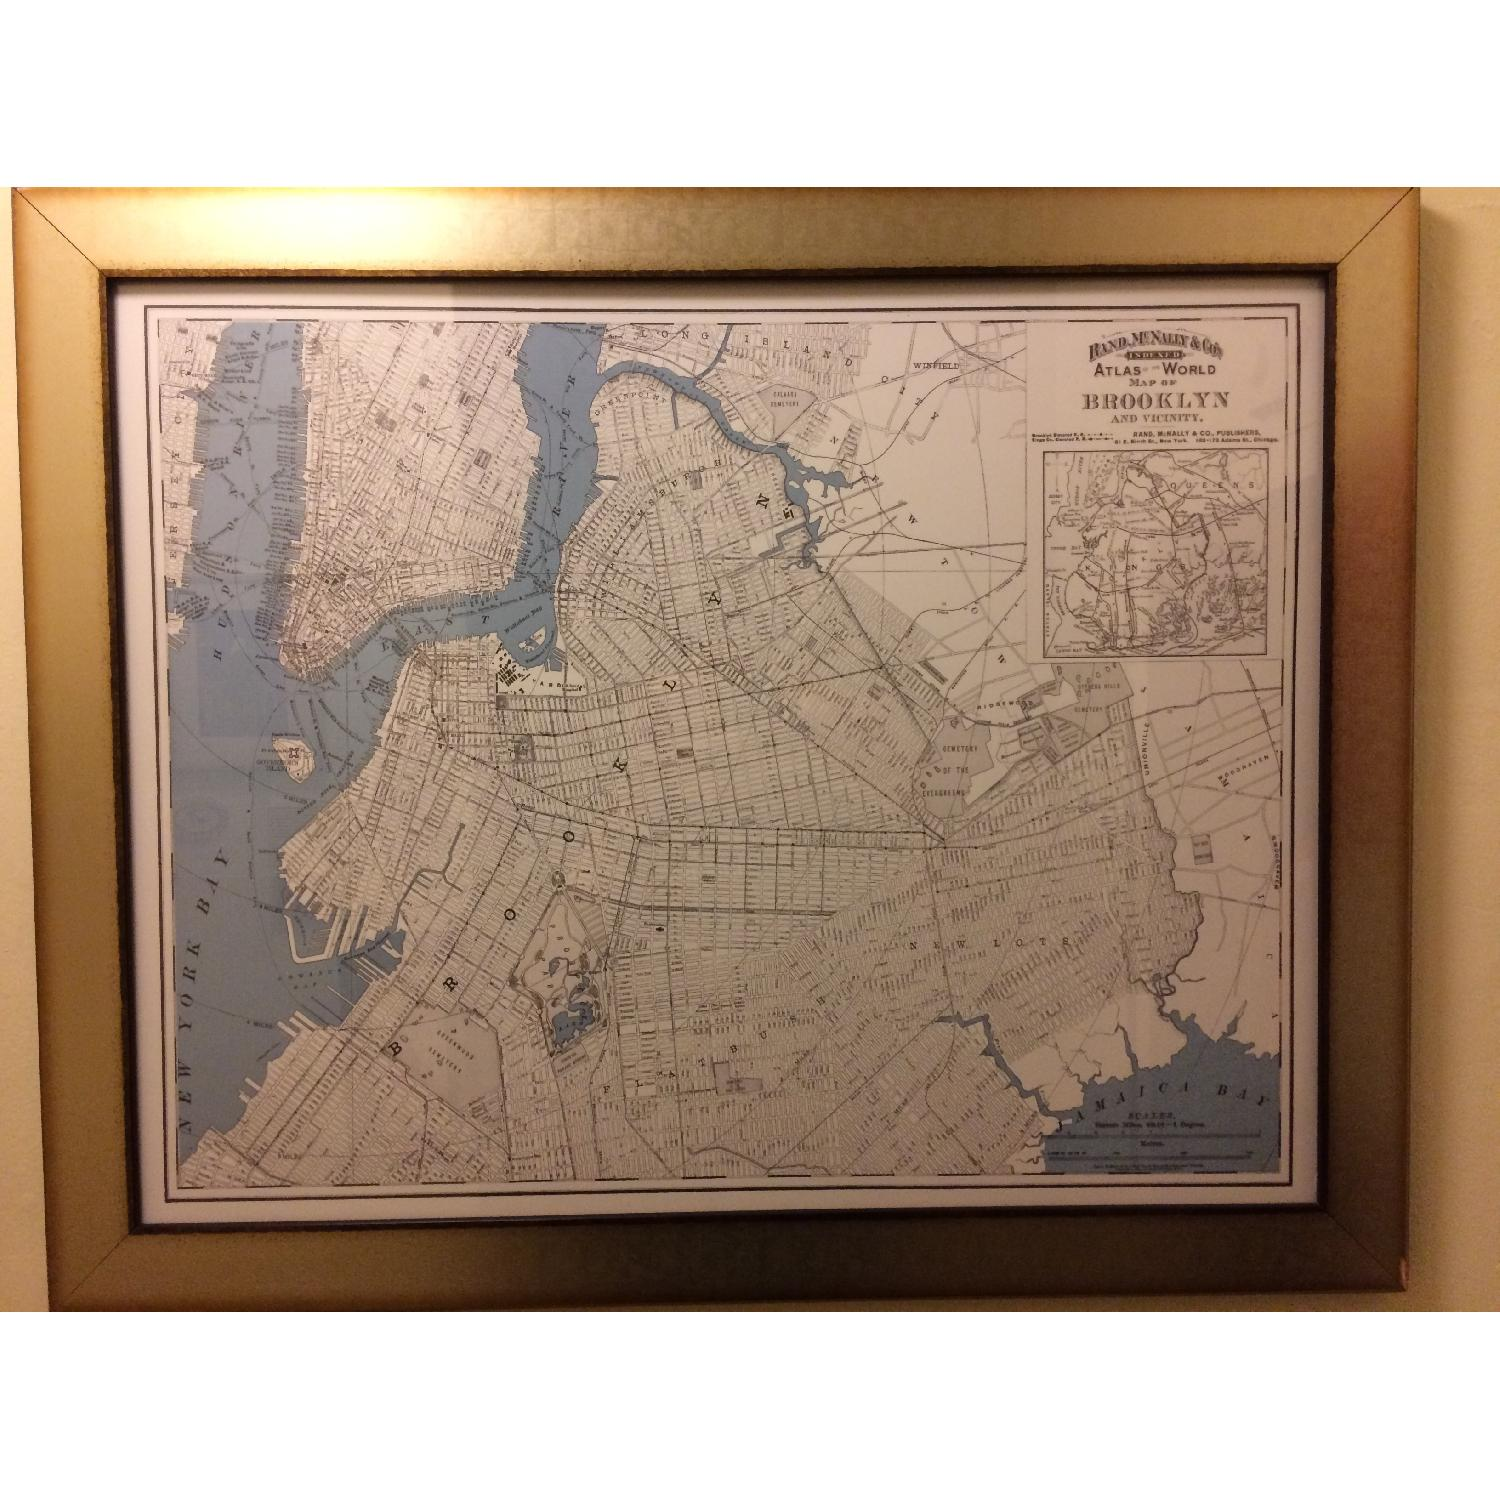 One Kings Lane Historic Brooklyn Map in Burnished Silver Frame - image-1